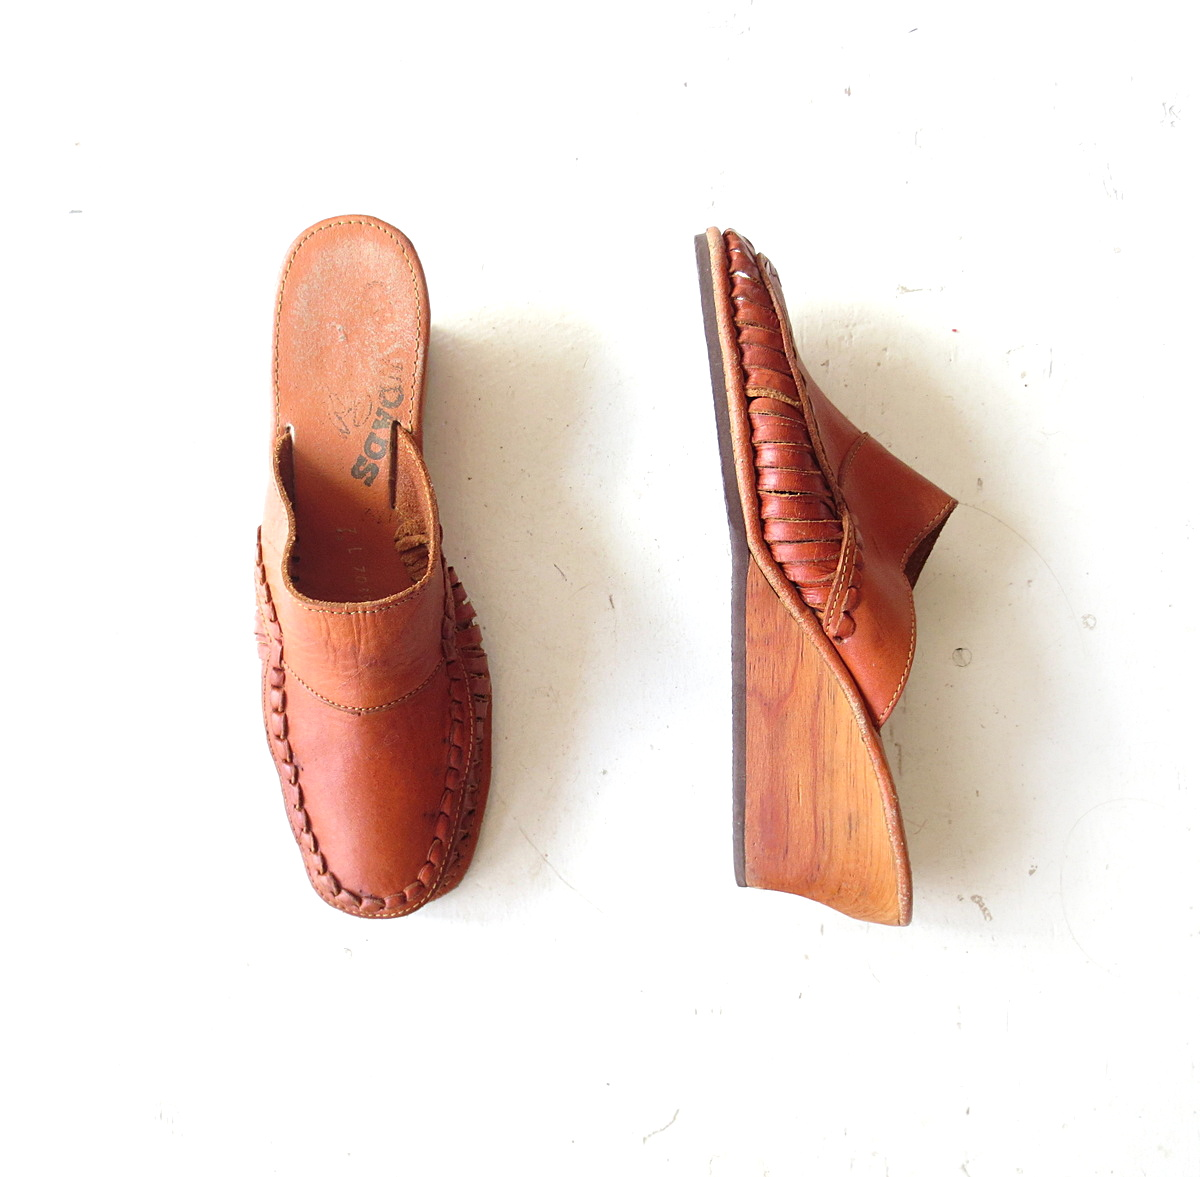 Small earth vintage shop accessories update boots clogs and heels